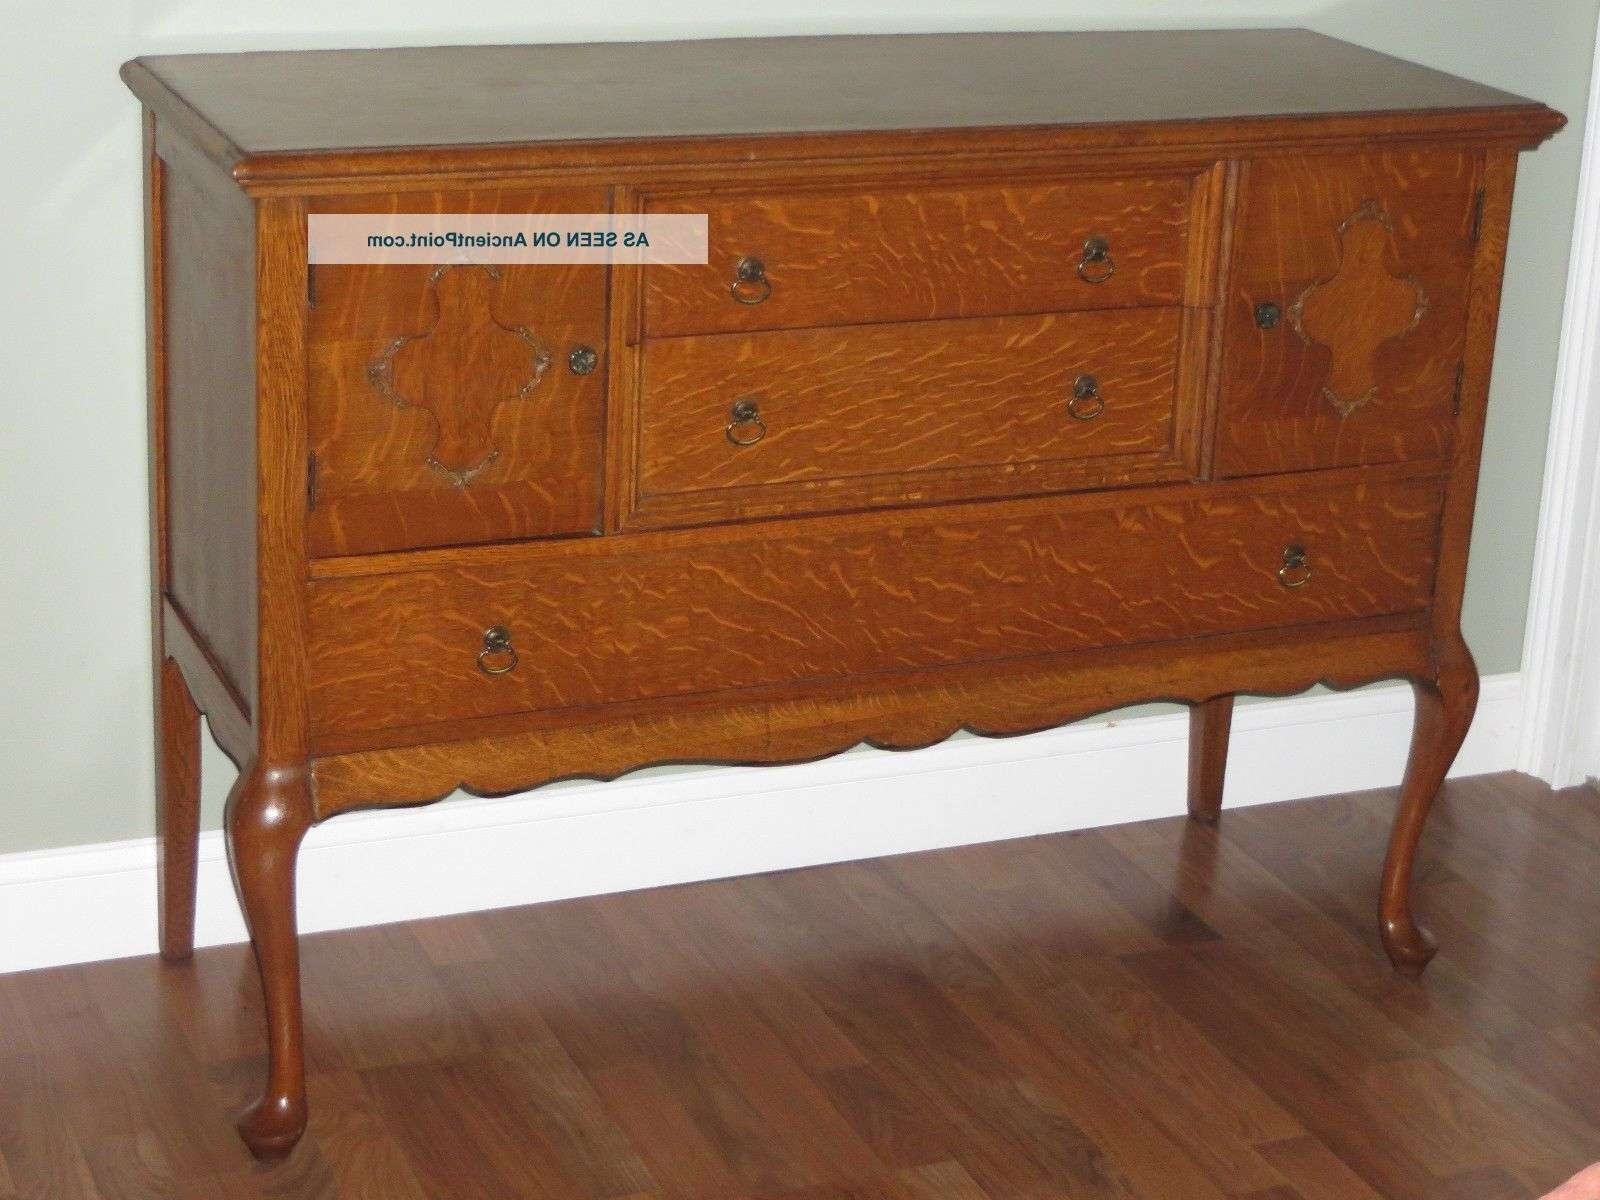 Best Of Buffet Sideboard Server – Bjdgjy Intended For Vintage Sideboards And Buffets (View 3 of 20)